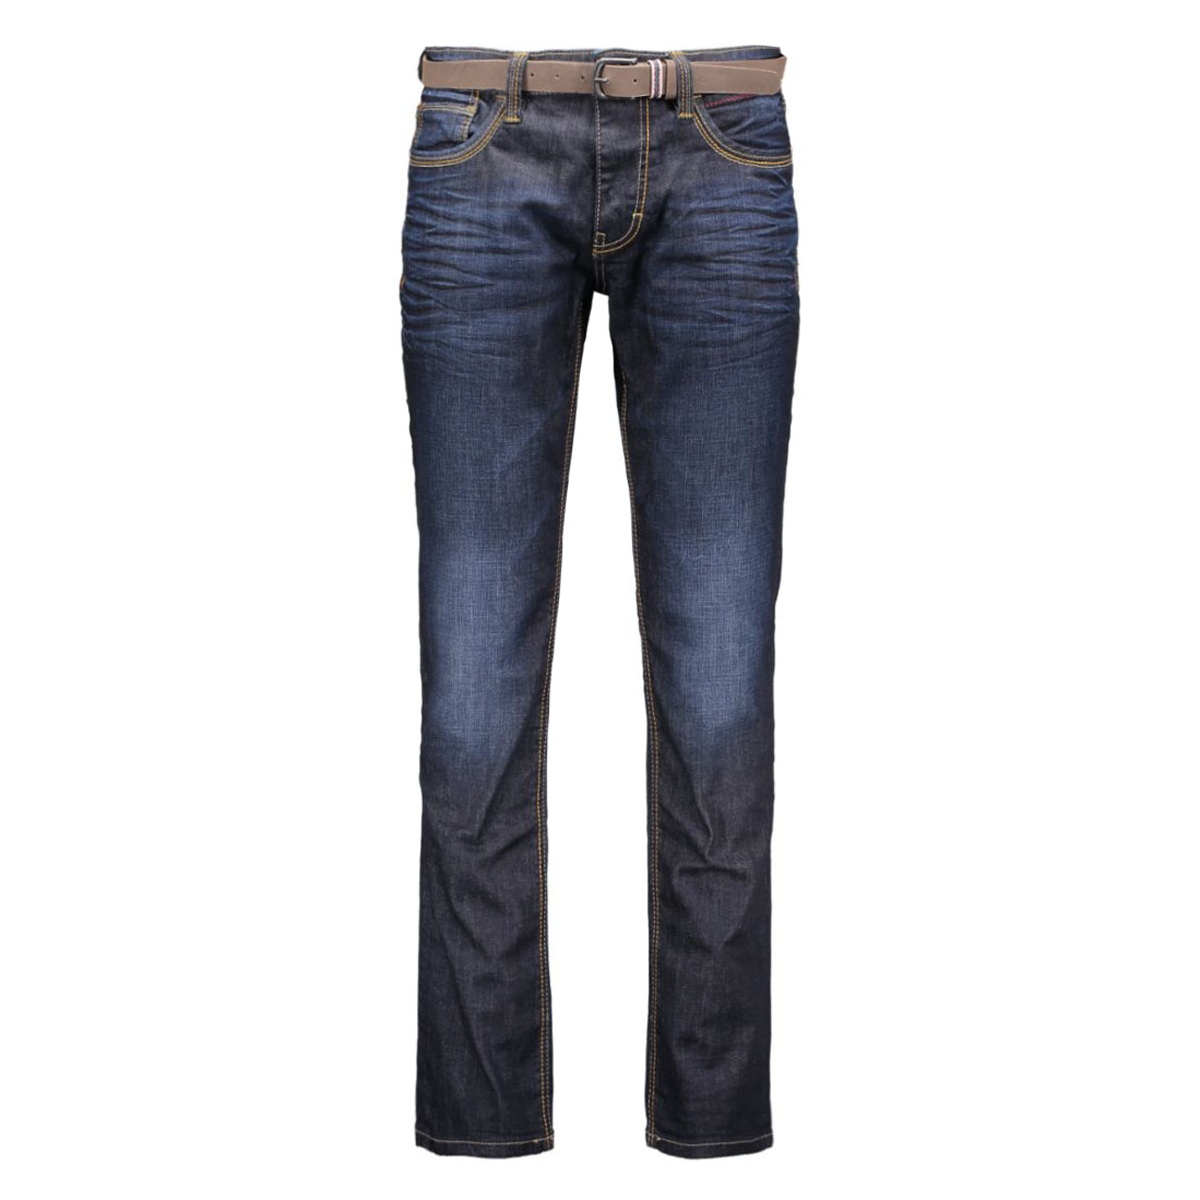 6204798.09.10 tom tailor jeans 1053